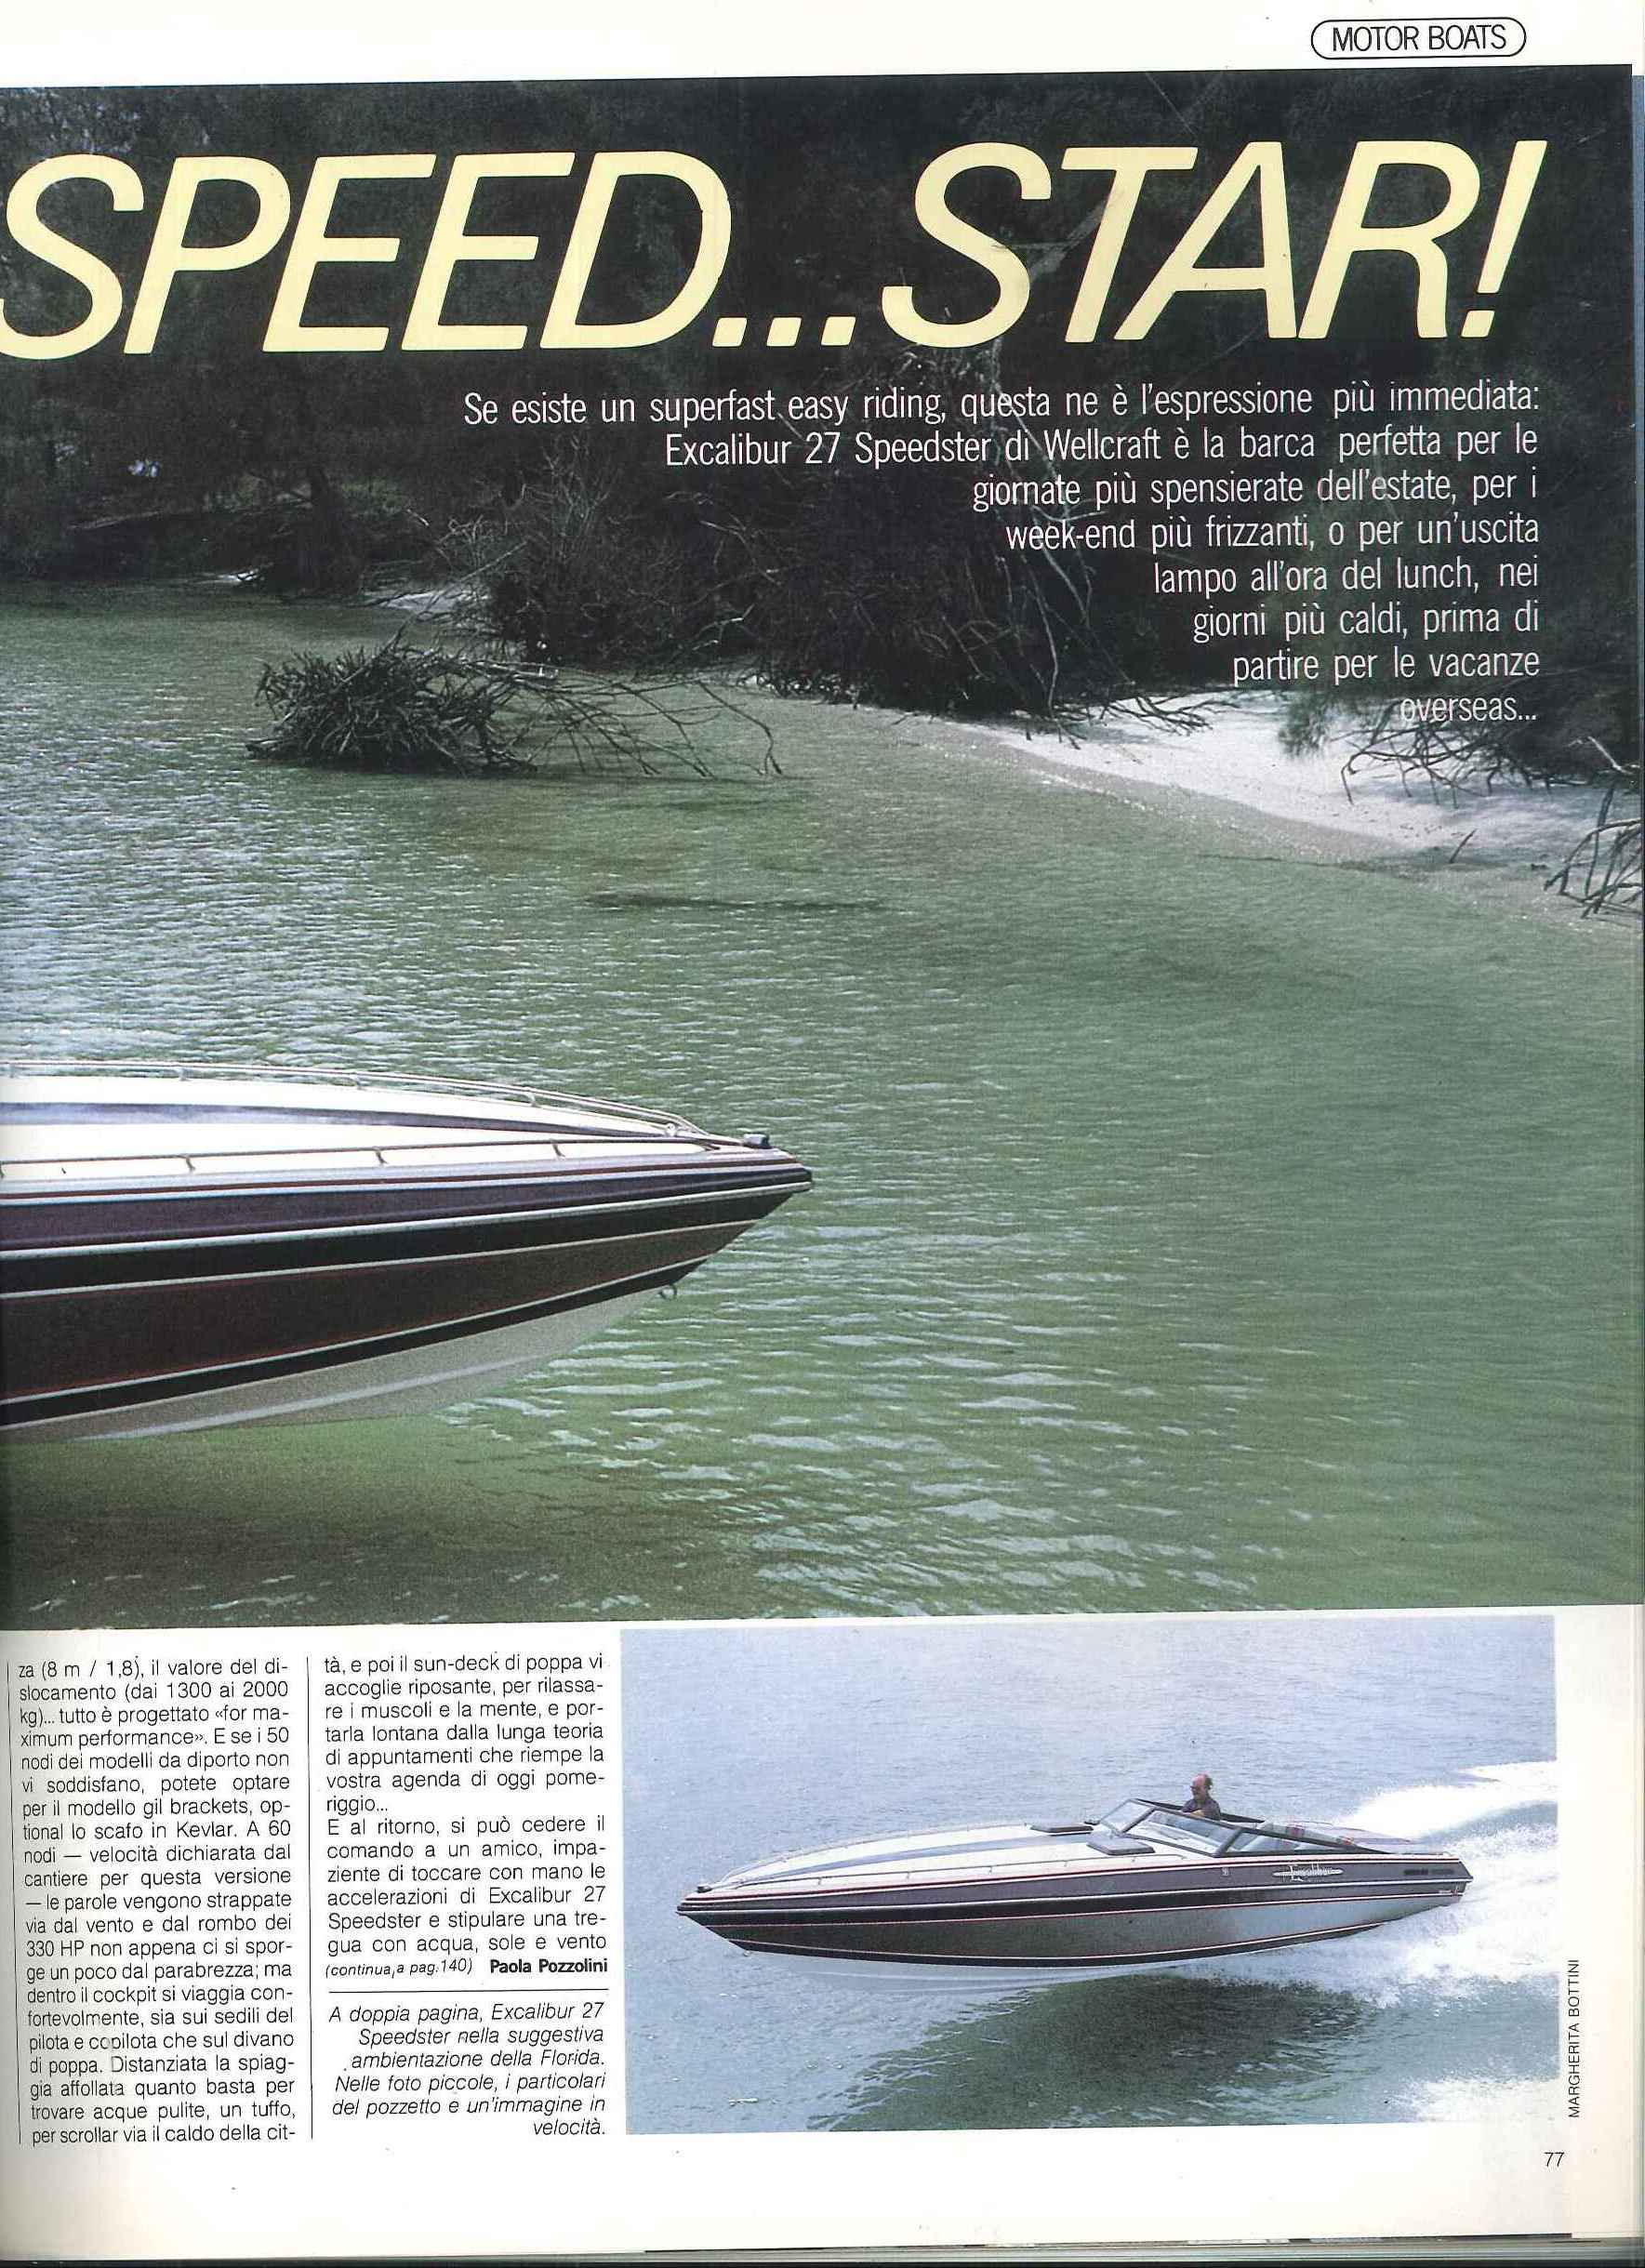 1984 05 PRESS WELLCRAFT EXCALIBUR 27 UOMO MARE N°77 (02).jpg